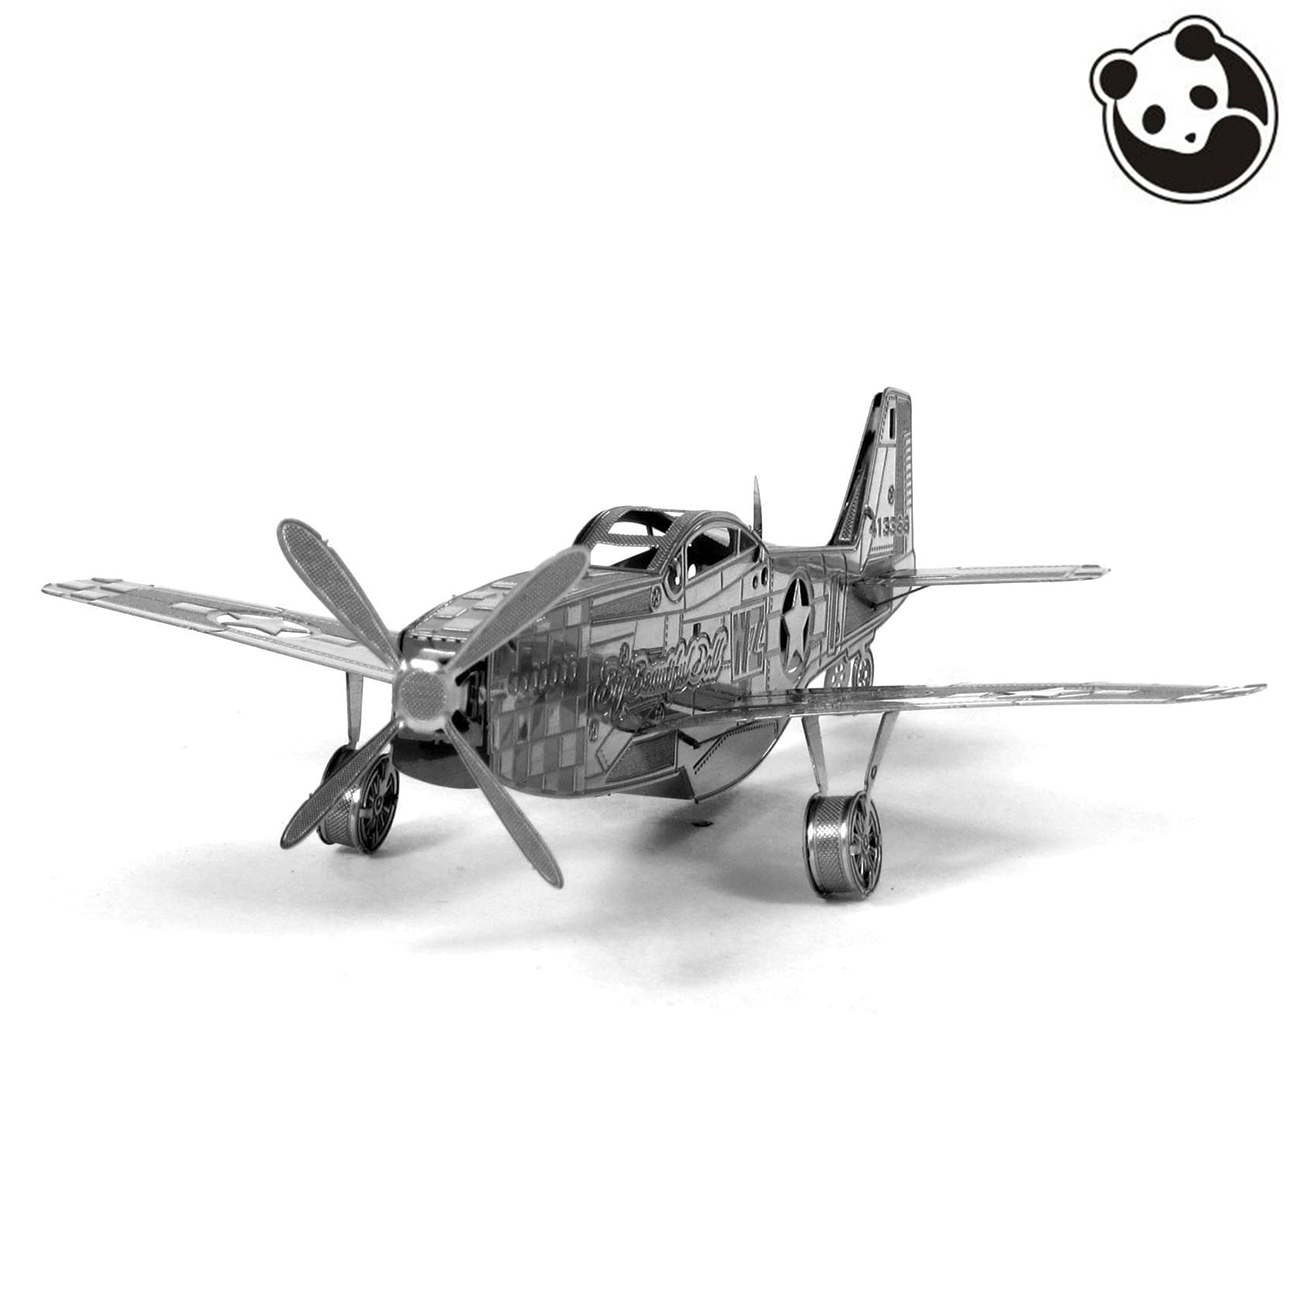 Panda model@PLANES 3D Metal Model Puzzles MUSTANG P-51 Chinese Metal Earth Stainless Steel Military Series Creative Gifts ICONX(China (Mainland))